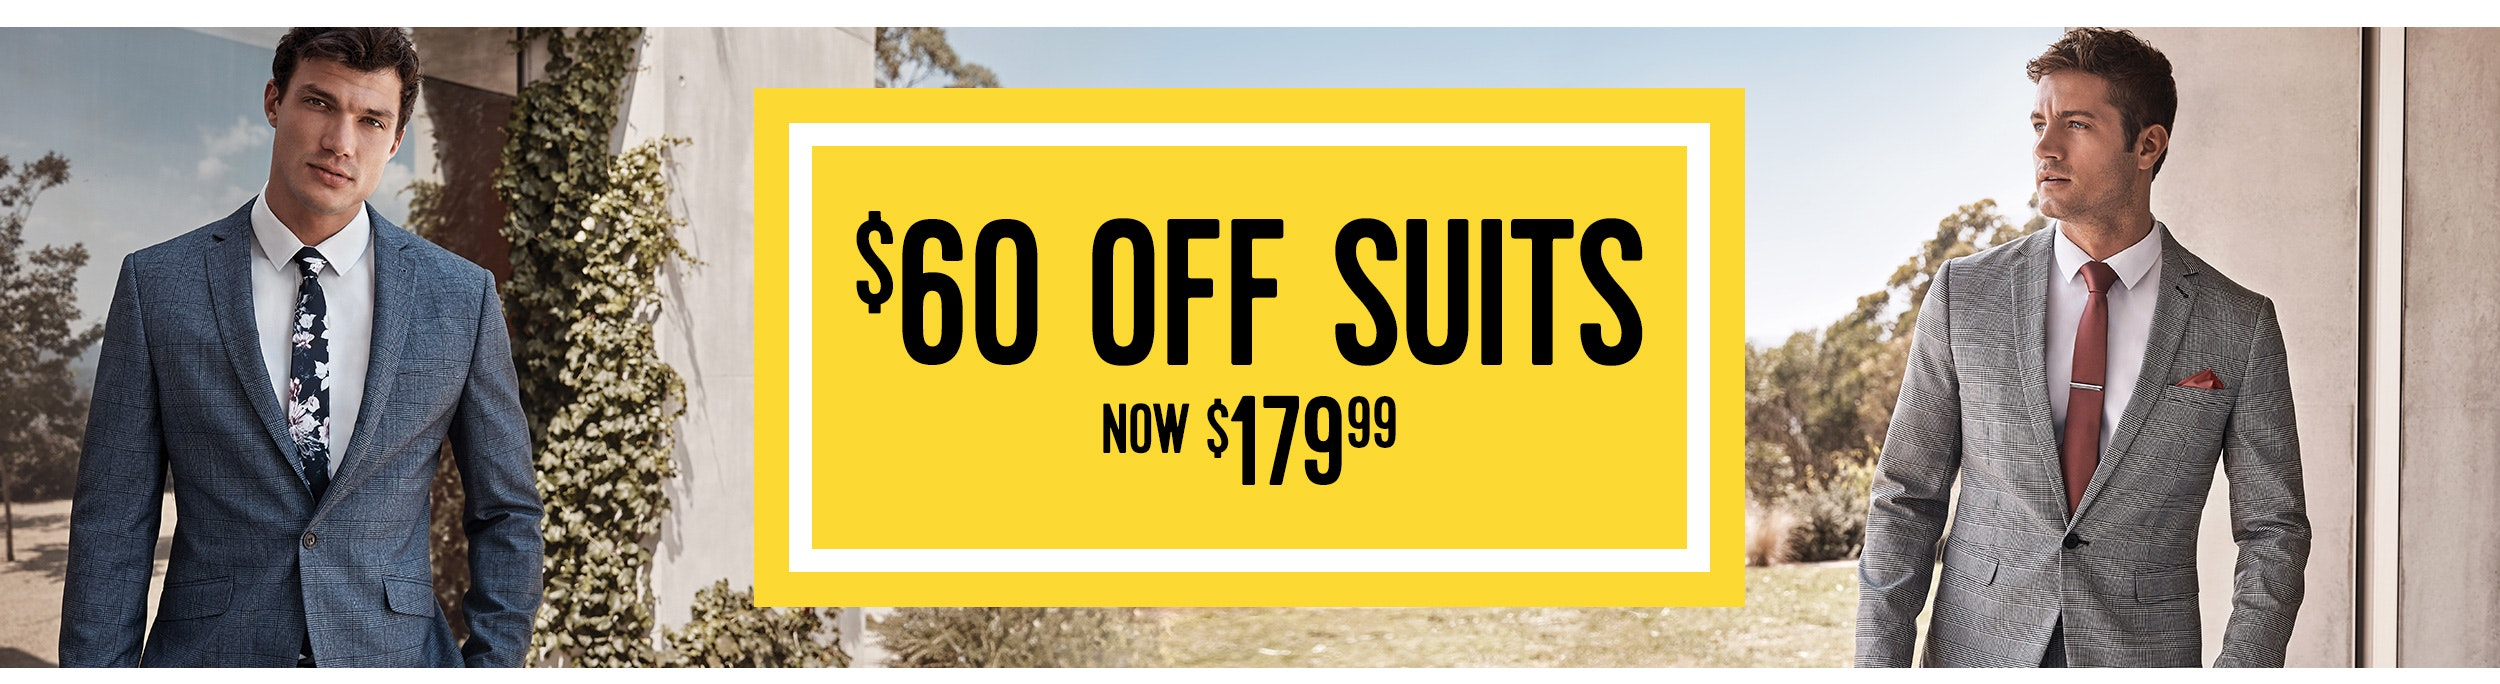 $50 off suits, now $149.99